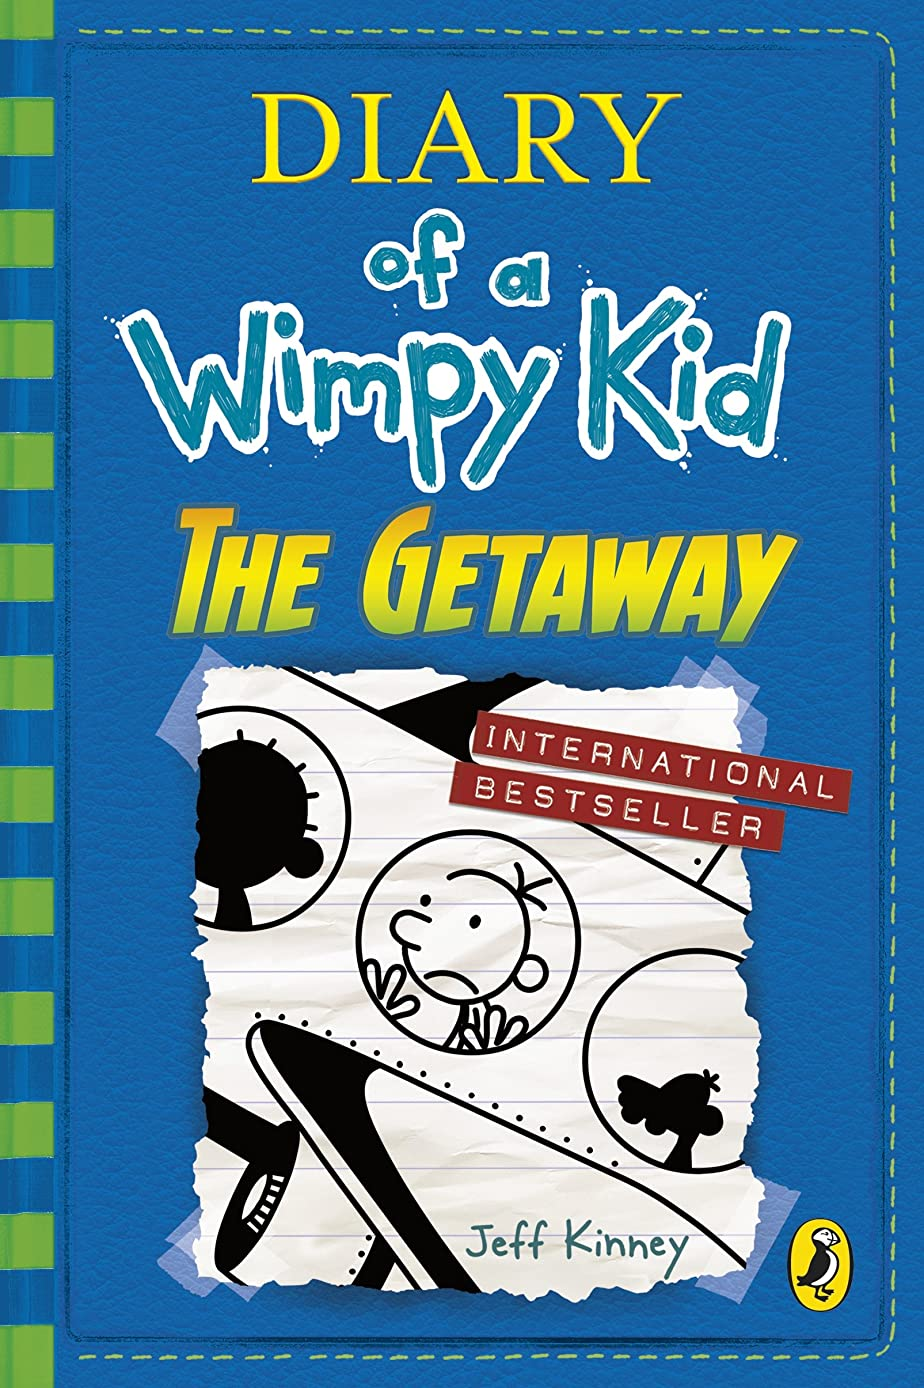 コンクリート順番協力的Diary of a Wimpy Kid: The Getaway (book 12) (English Edition)